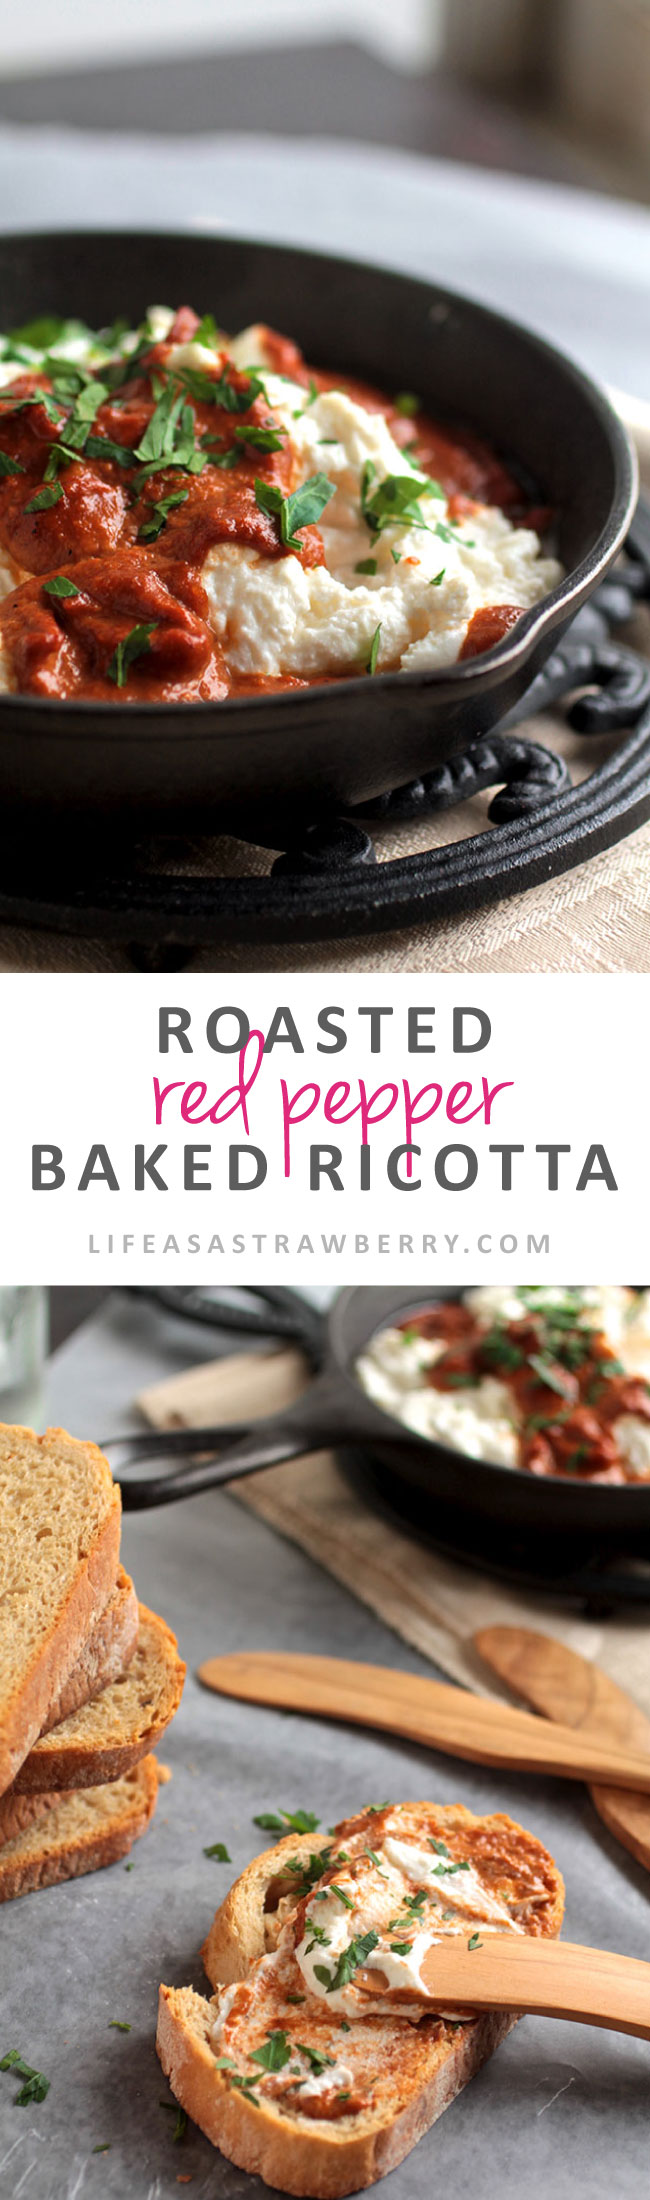 Roasted Red Pepper Baked Ricotta | This amazing baked cheese dip is sure to be a hit! Velvety ricotta cheese with a flavor-packed roasted red pepper sauce. This amazing roasted red pepper baked ricotta is the perfect ricotta dip for your next gathering! A simple roasted red pepper sauce is baked with ricotta cheese for a warm and hearty appetizer your guests are sure to love.